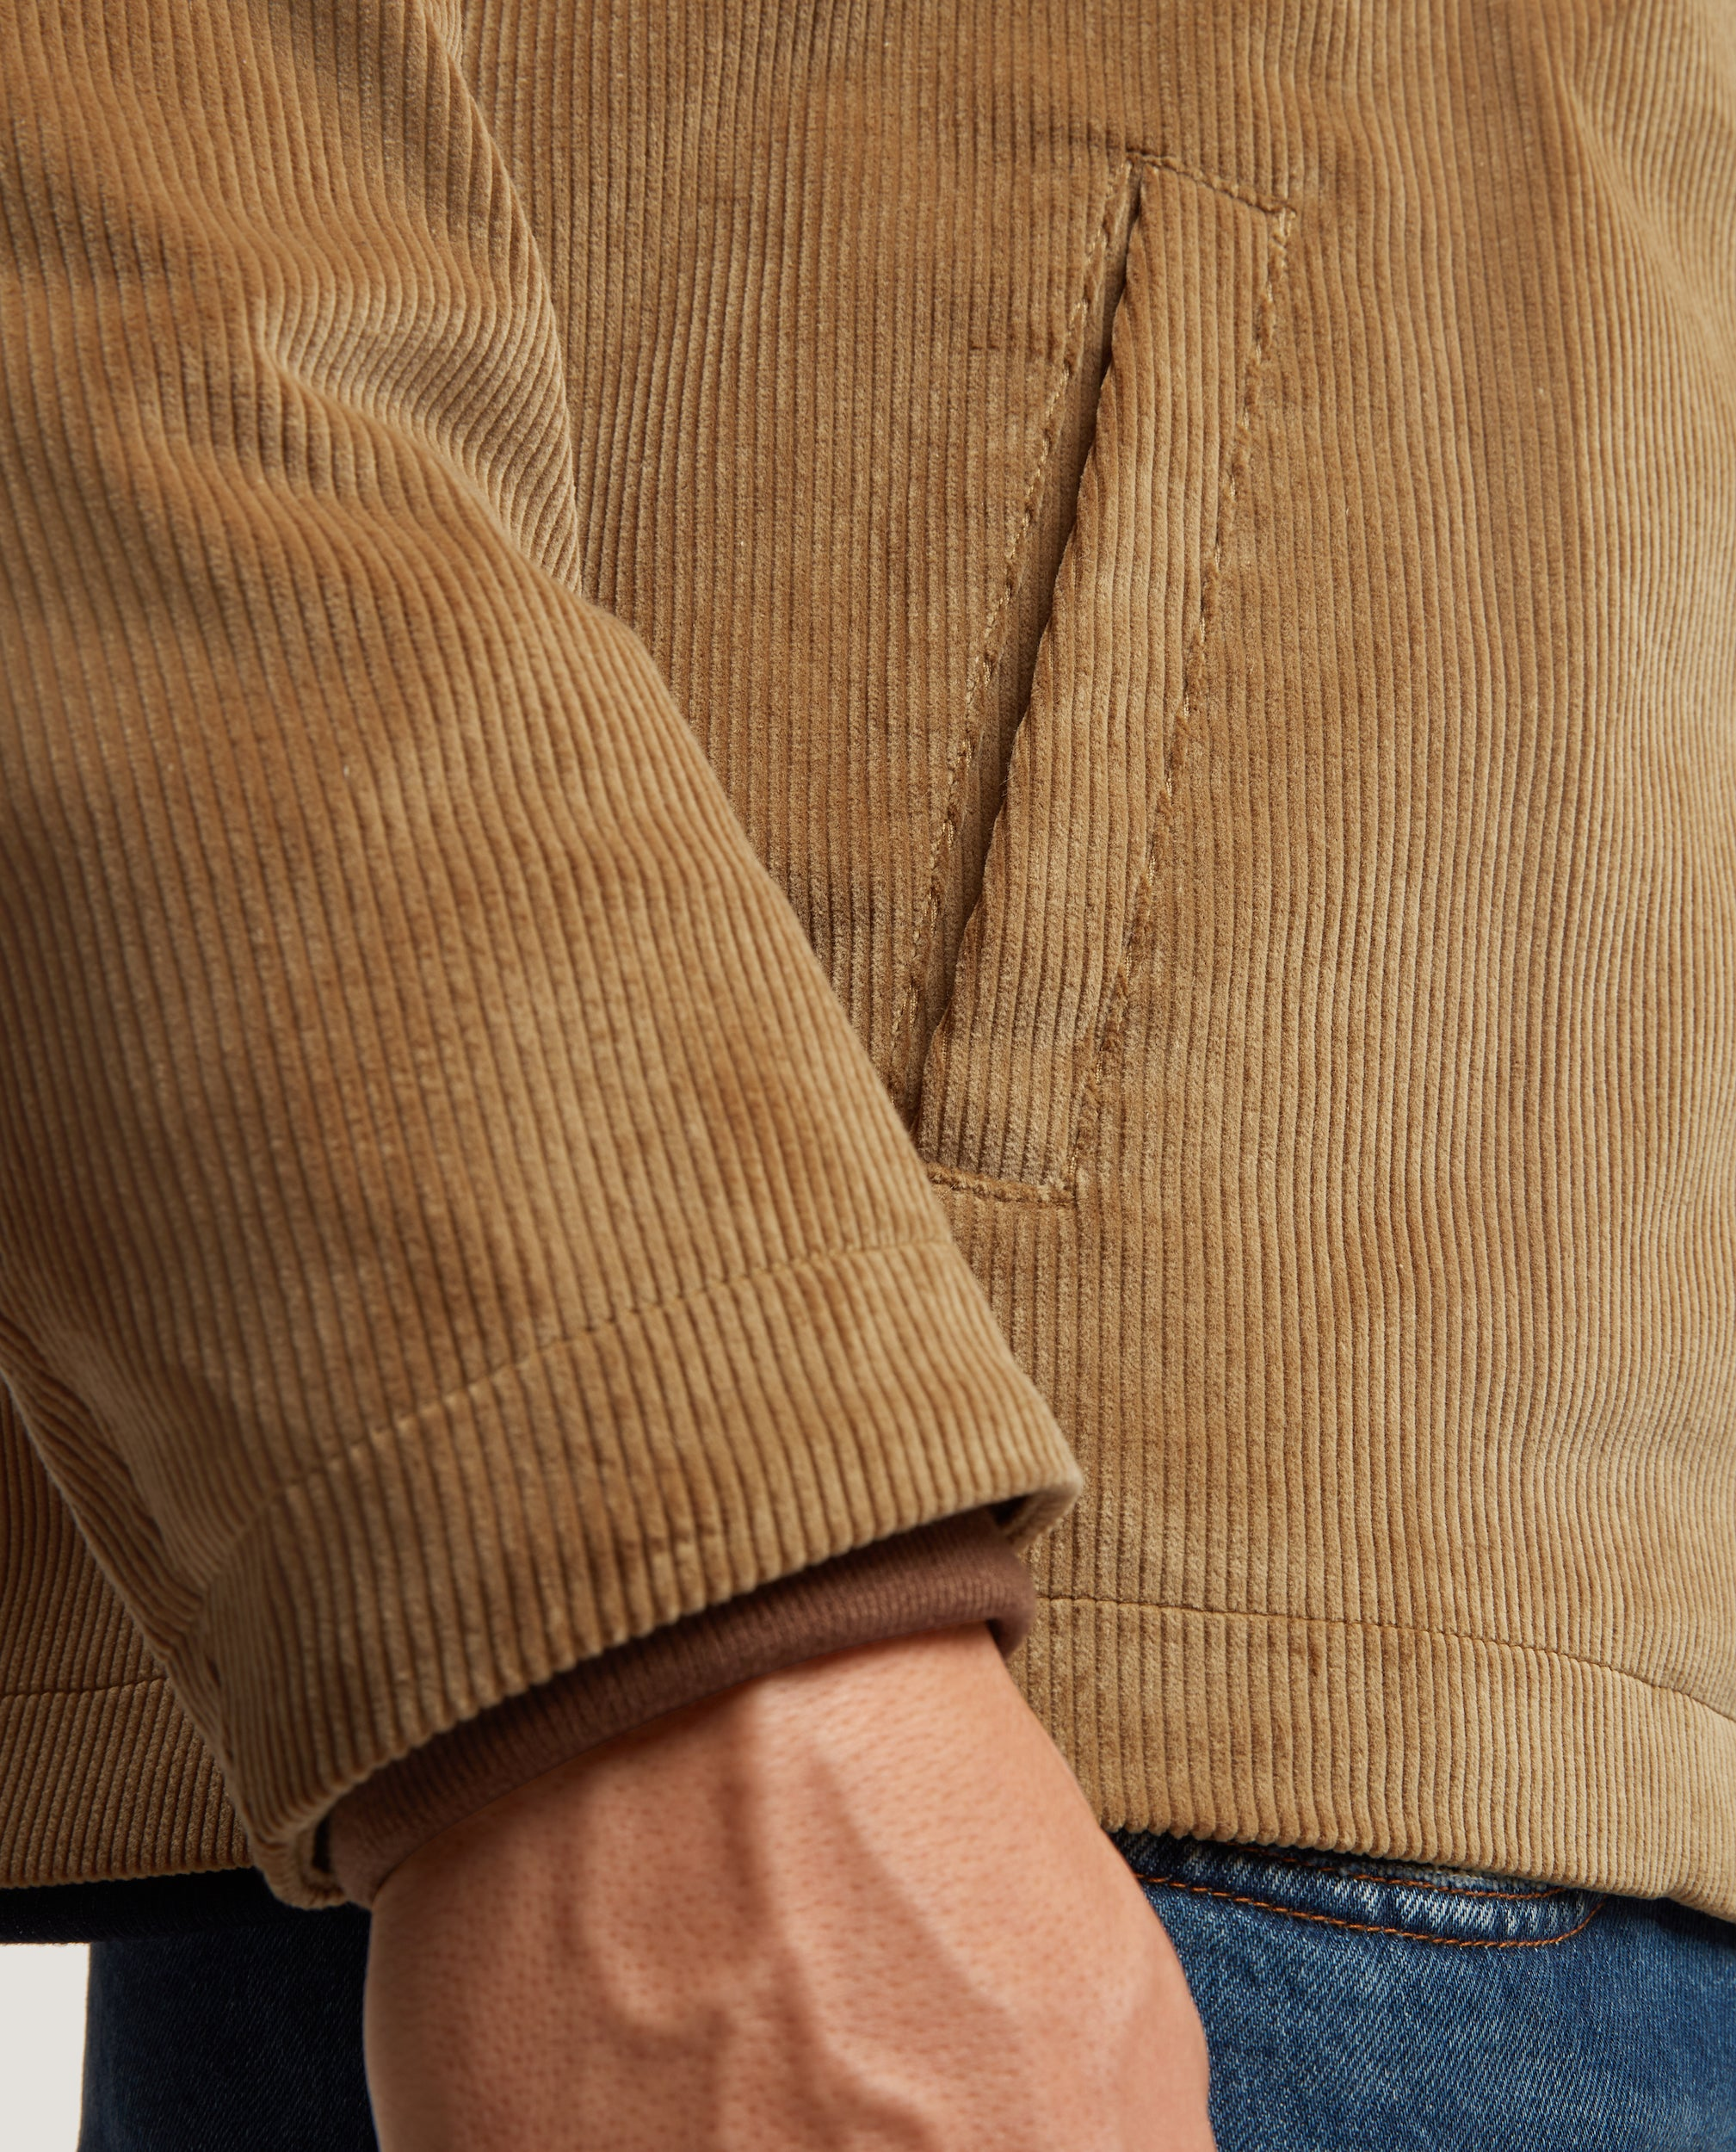 HARVEY Blouson jacket | Corduroy | Tan